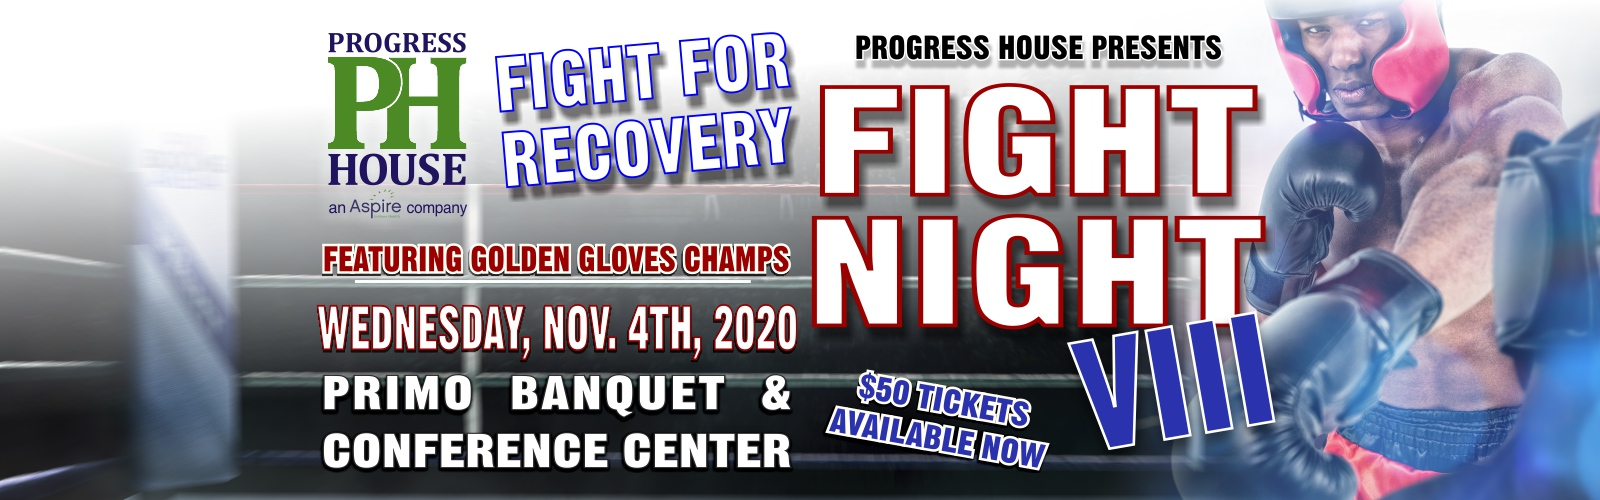 Fight for Recovery Progress House